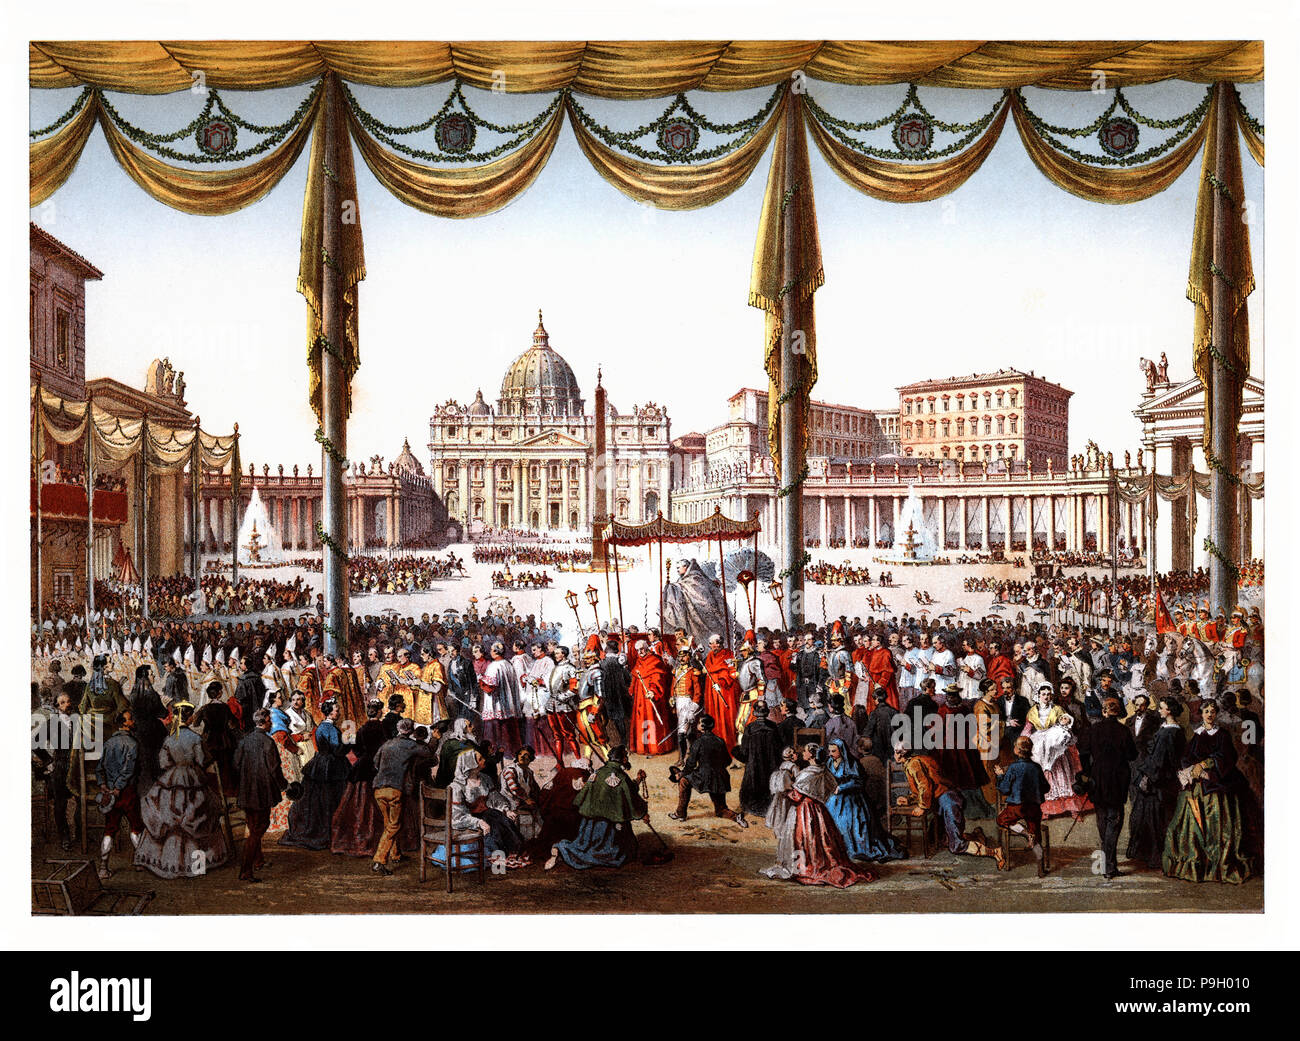 Pontifical ceremonies. Procession of the Holy Sacraments in Saint Peter's square. Color engraving from 1871. - Stock Image